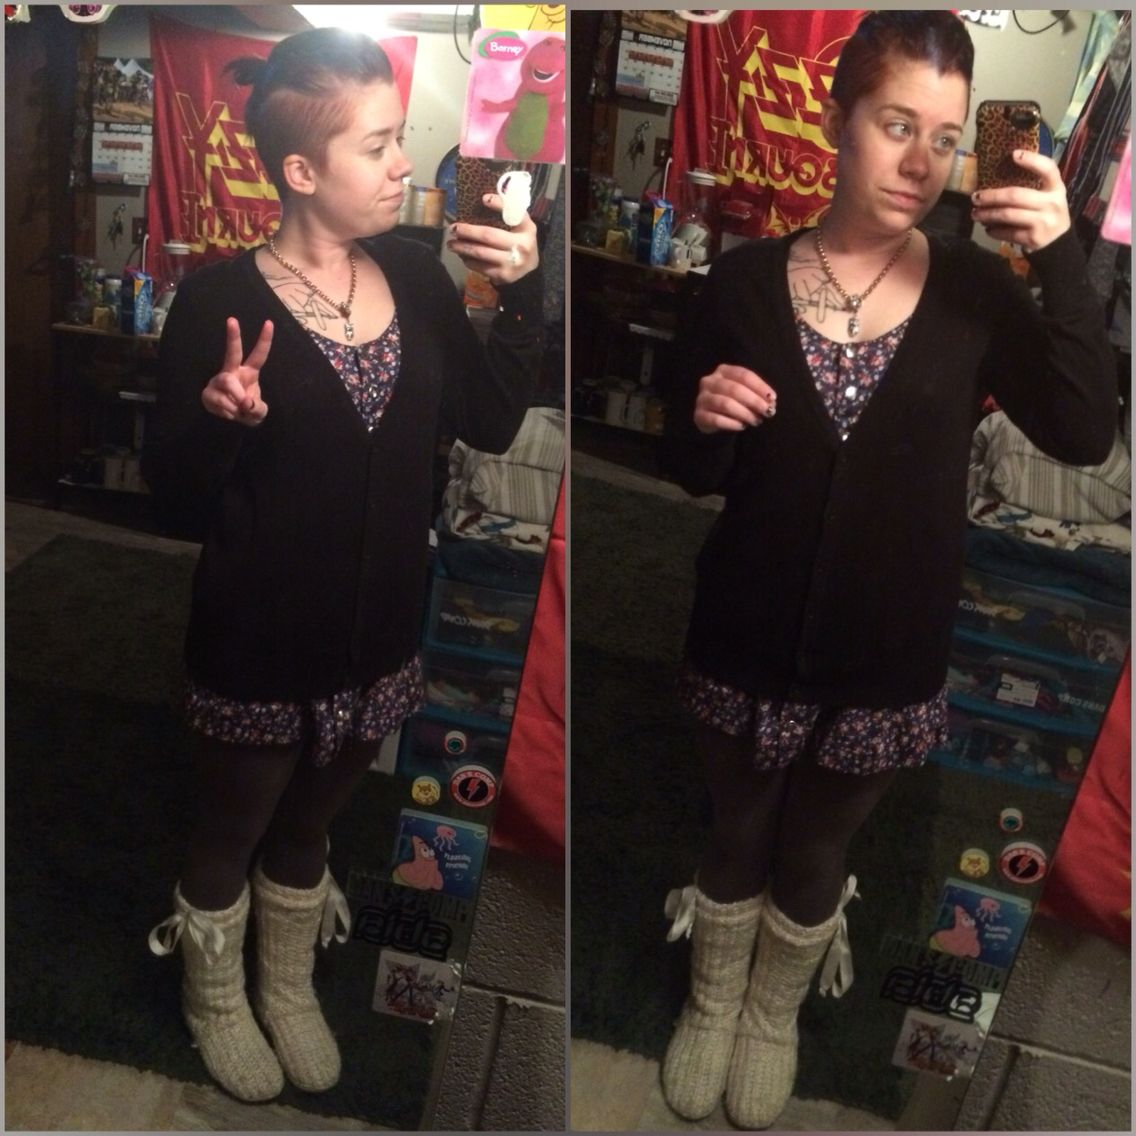 12-11-15 ok so we got the whole dress legging thing going on with high socks, skipper boots and a black cardigan. First trial outfit...SUCCESSFUL!!! Must do something different with the hair though!!